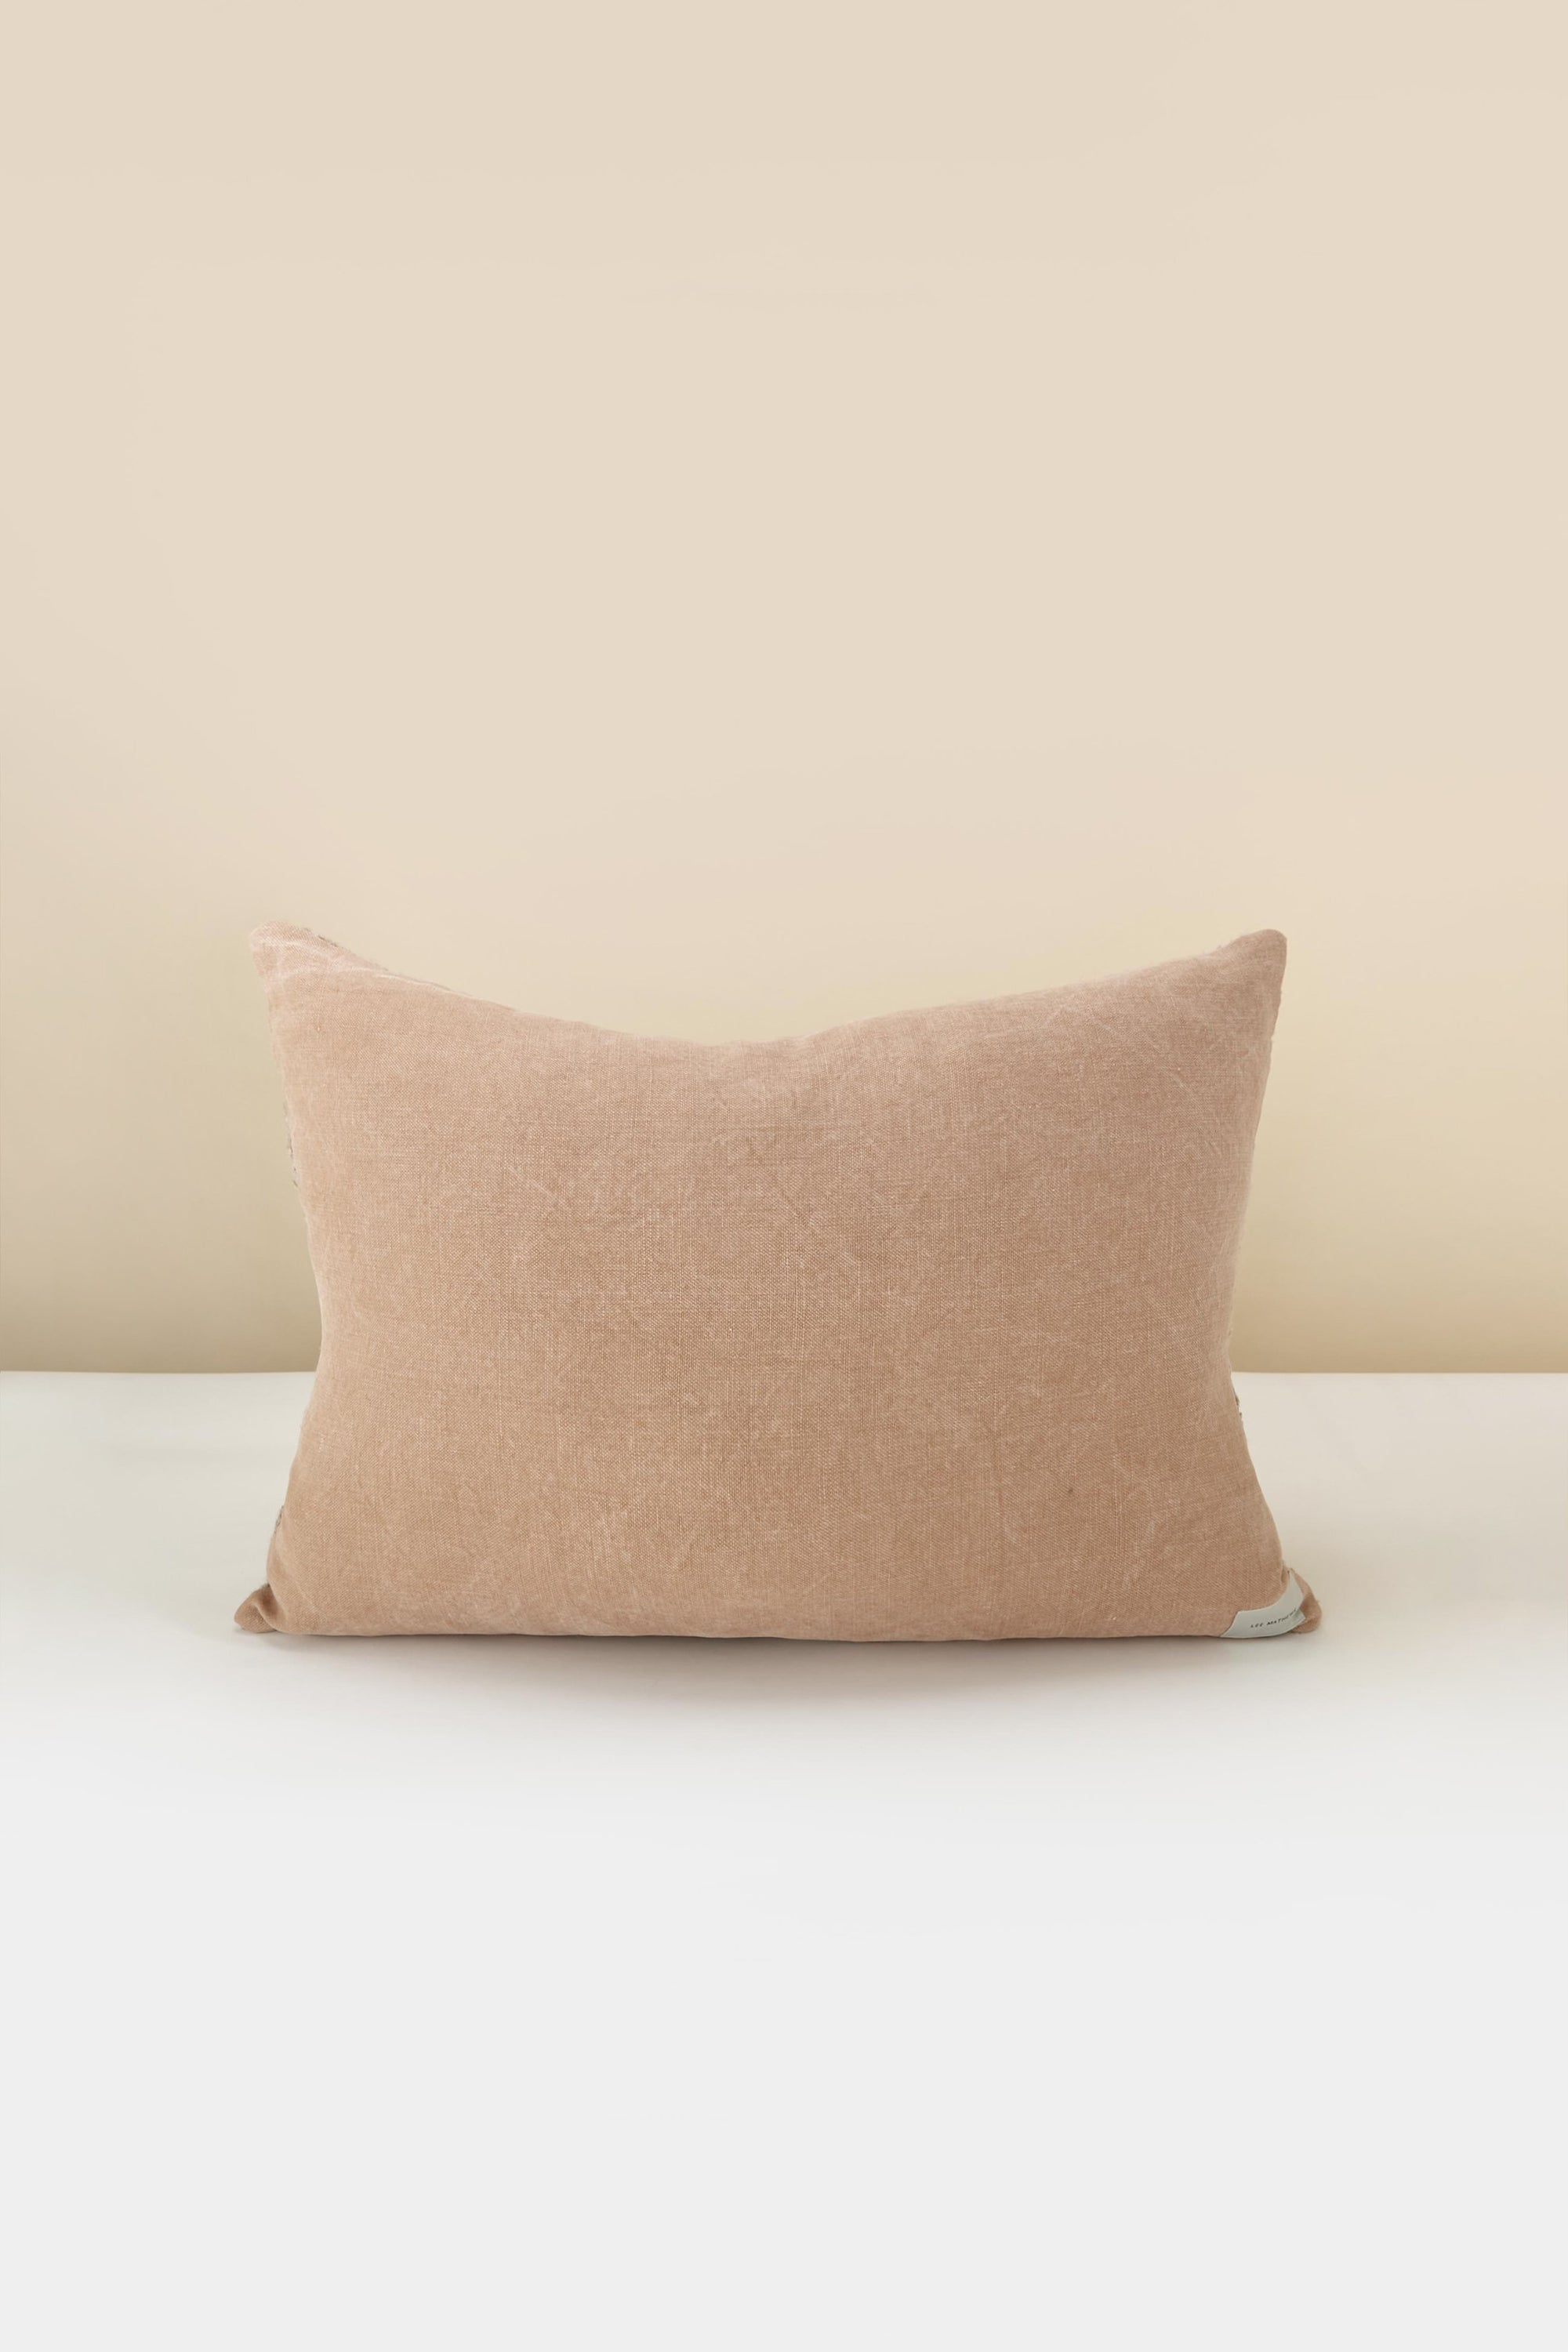 Lee Mathews Retro Rectangle Cushion - Small